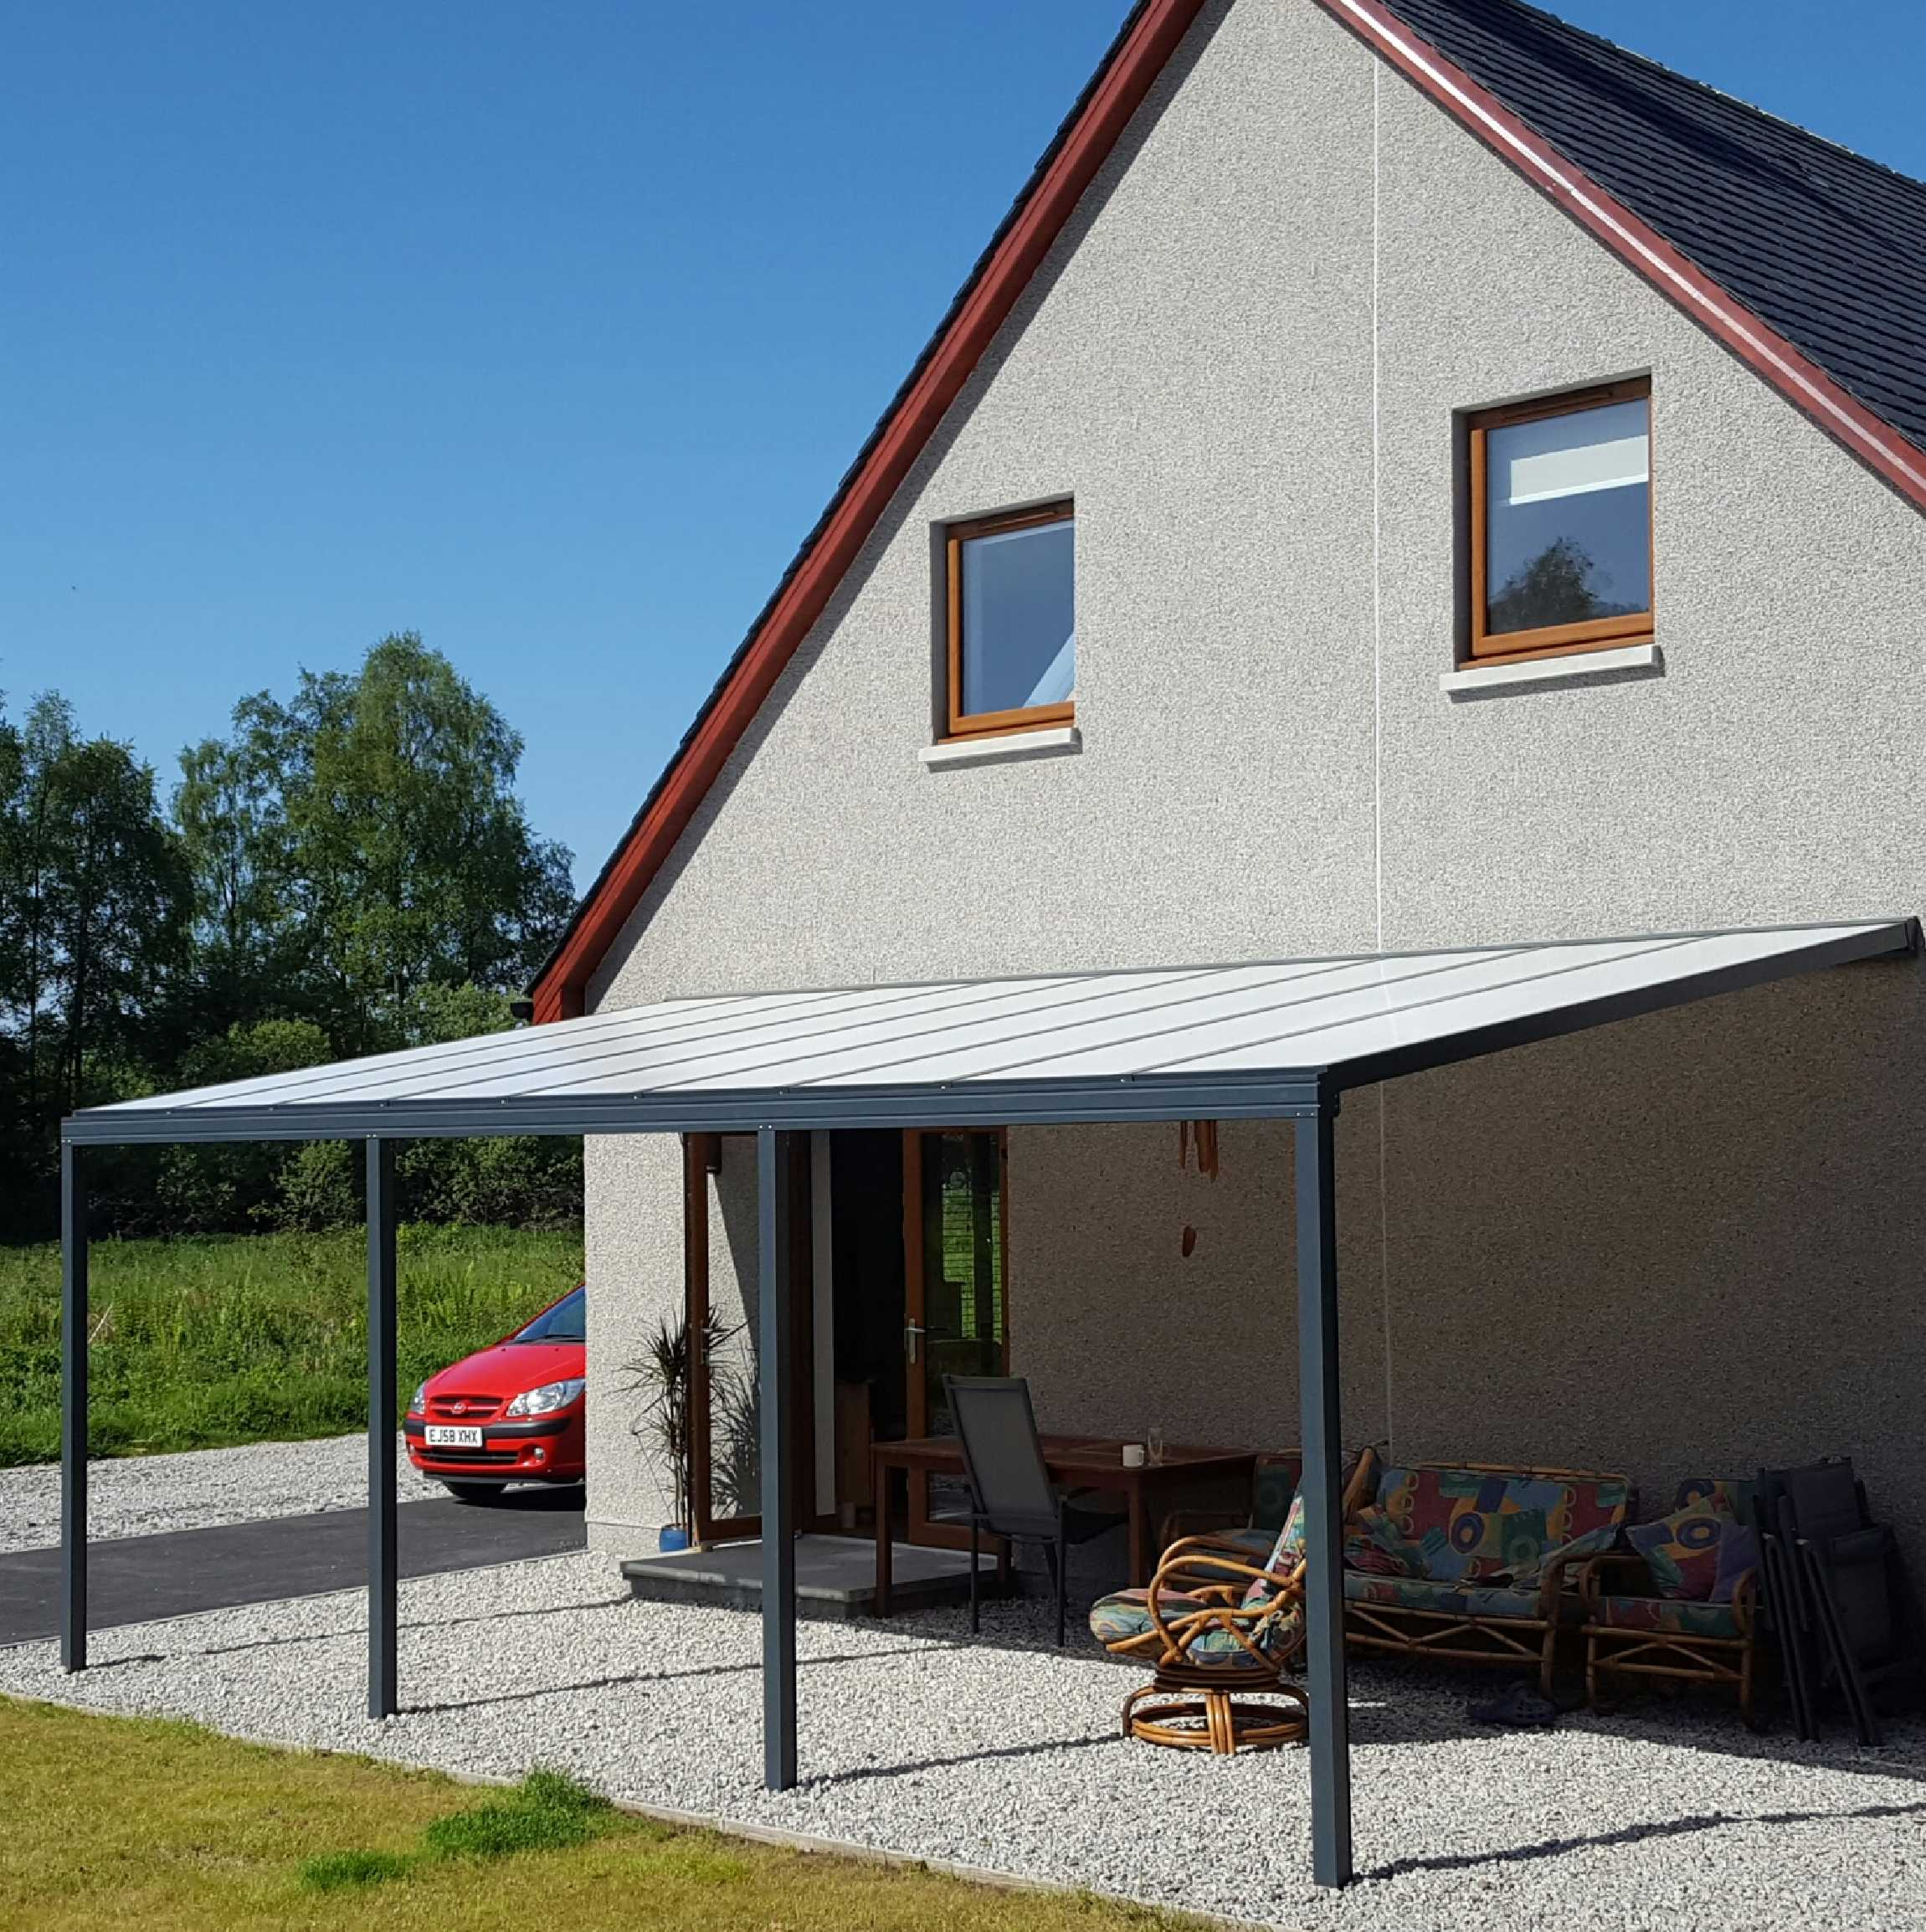 Great selection of Omega Smart Lean-To Canopy, Anthracite Grey, 16mm Polycarbonate Glazing - 2.1m (W) x 4.0m (P), (2) Supporting Posts